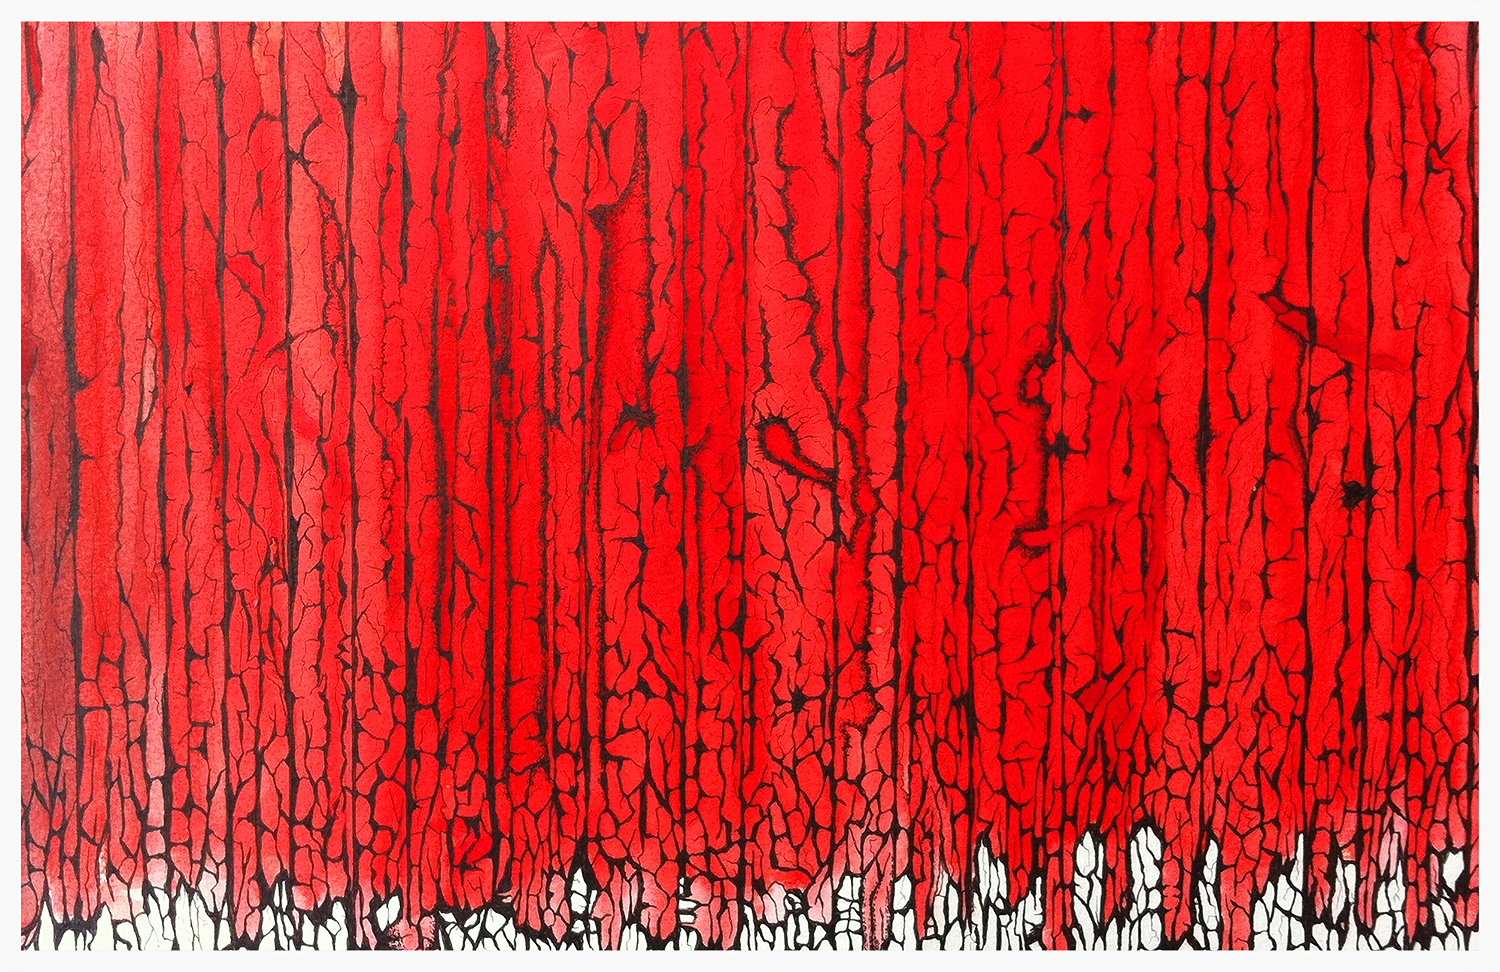 A Curtain of Red    Ink on paper     50 cm x 70 cm   ©ANTHONY WIGGLESWORTH 2015